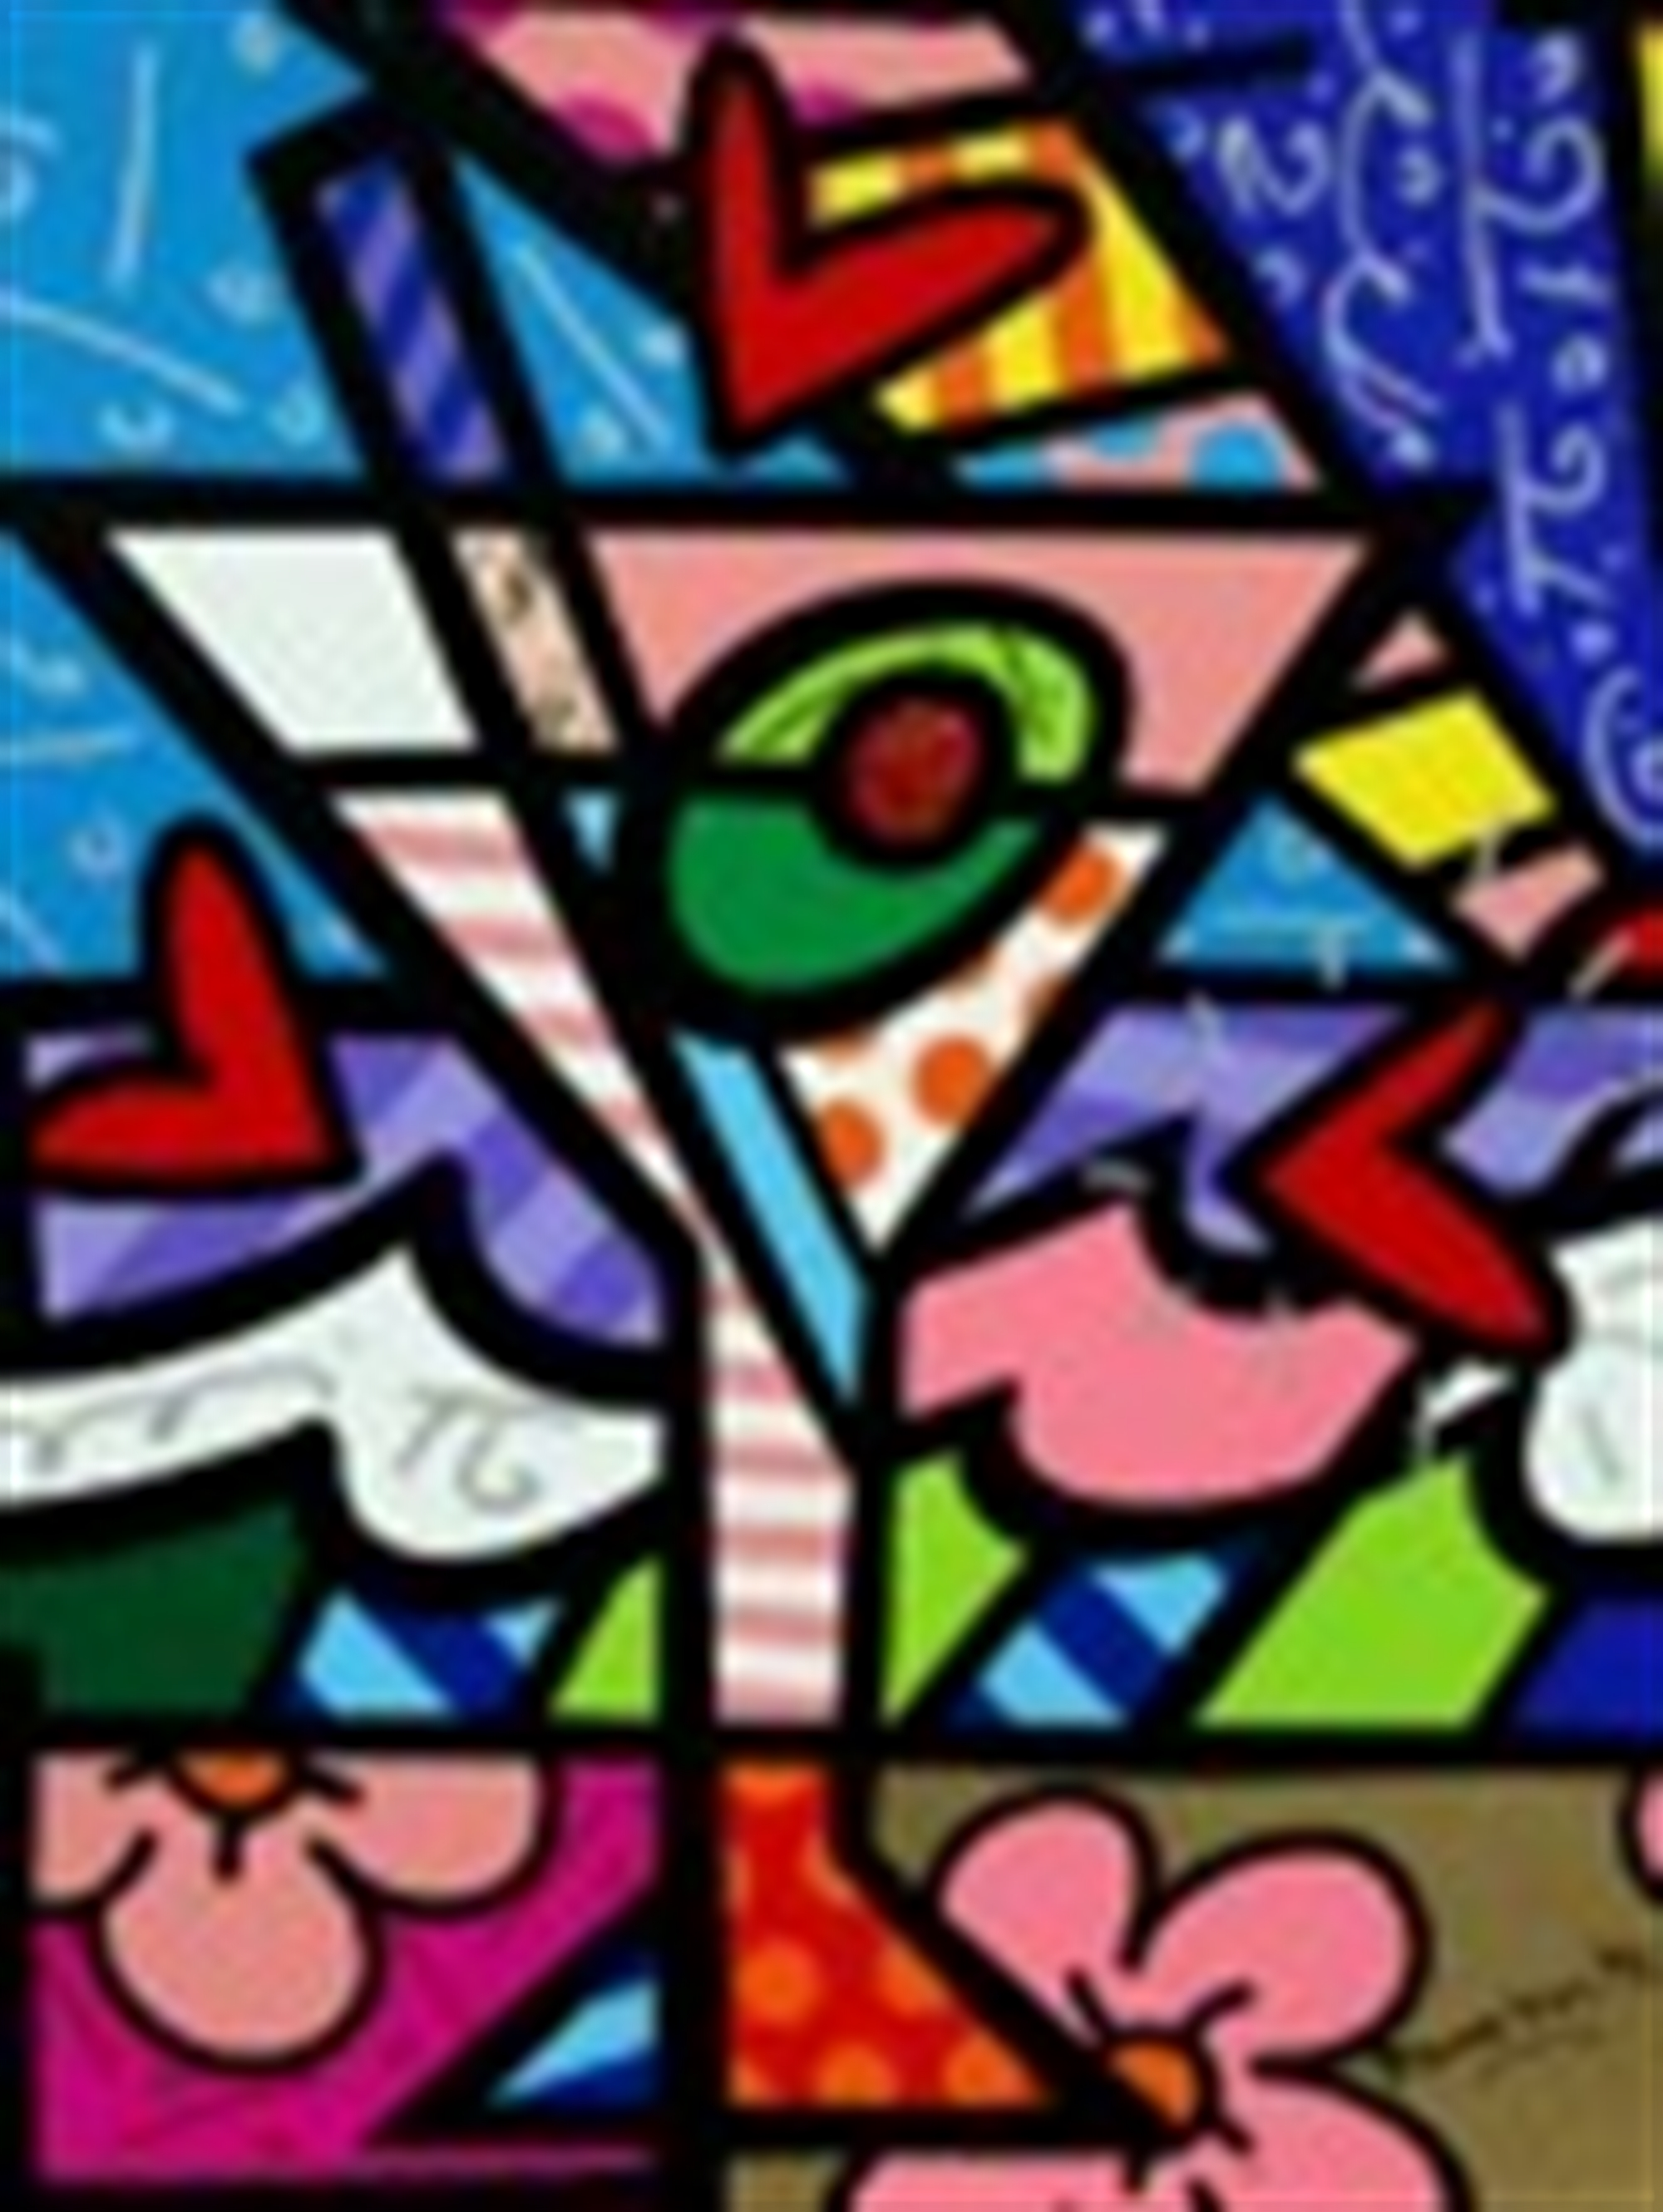 MARTINI by Romero Britto